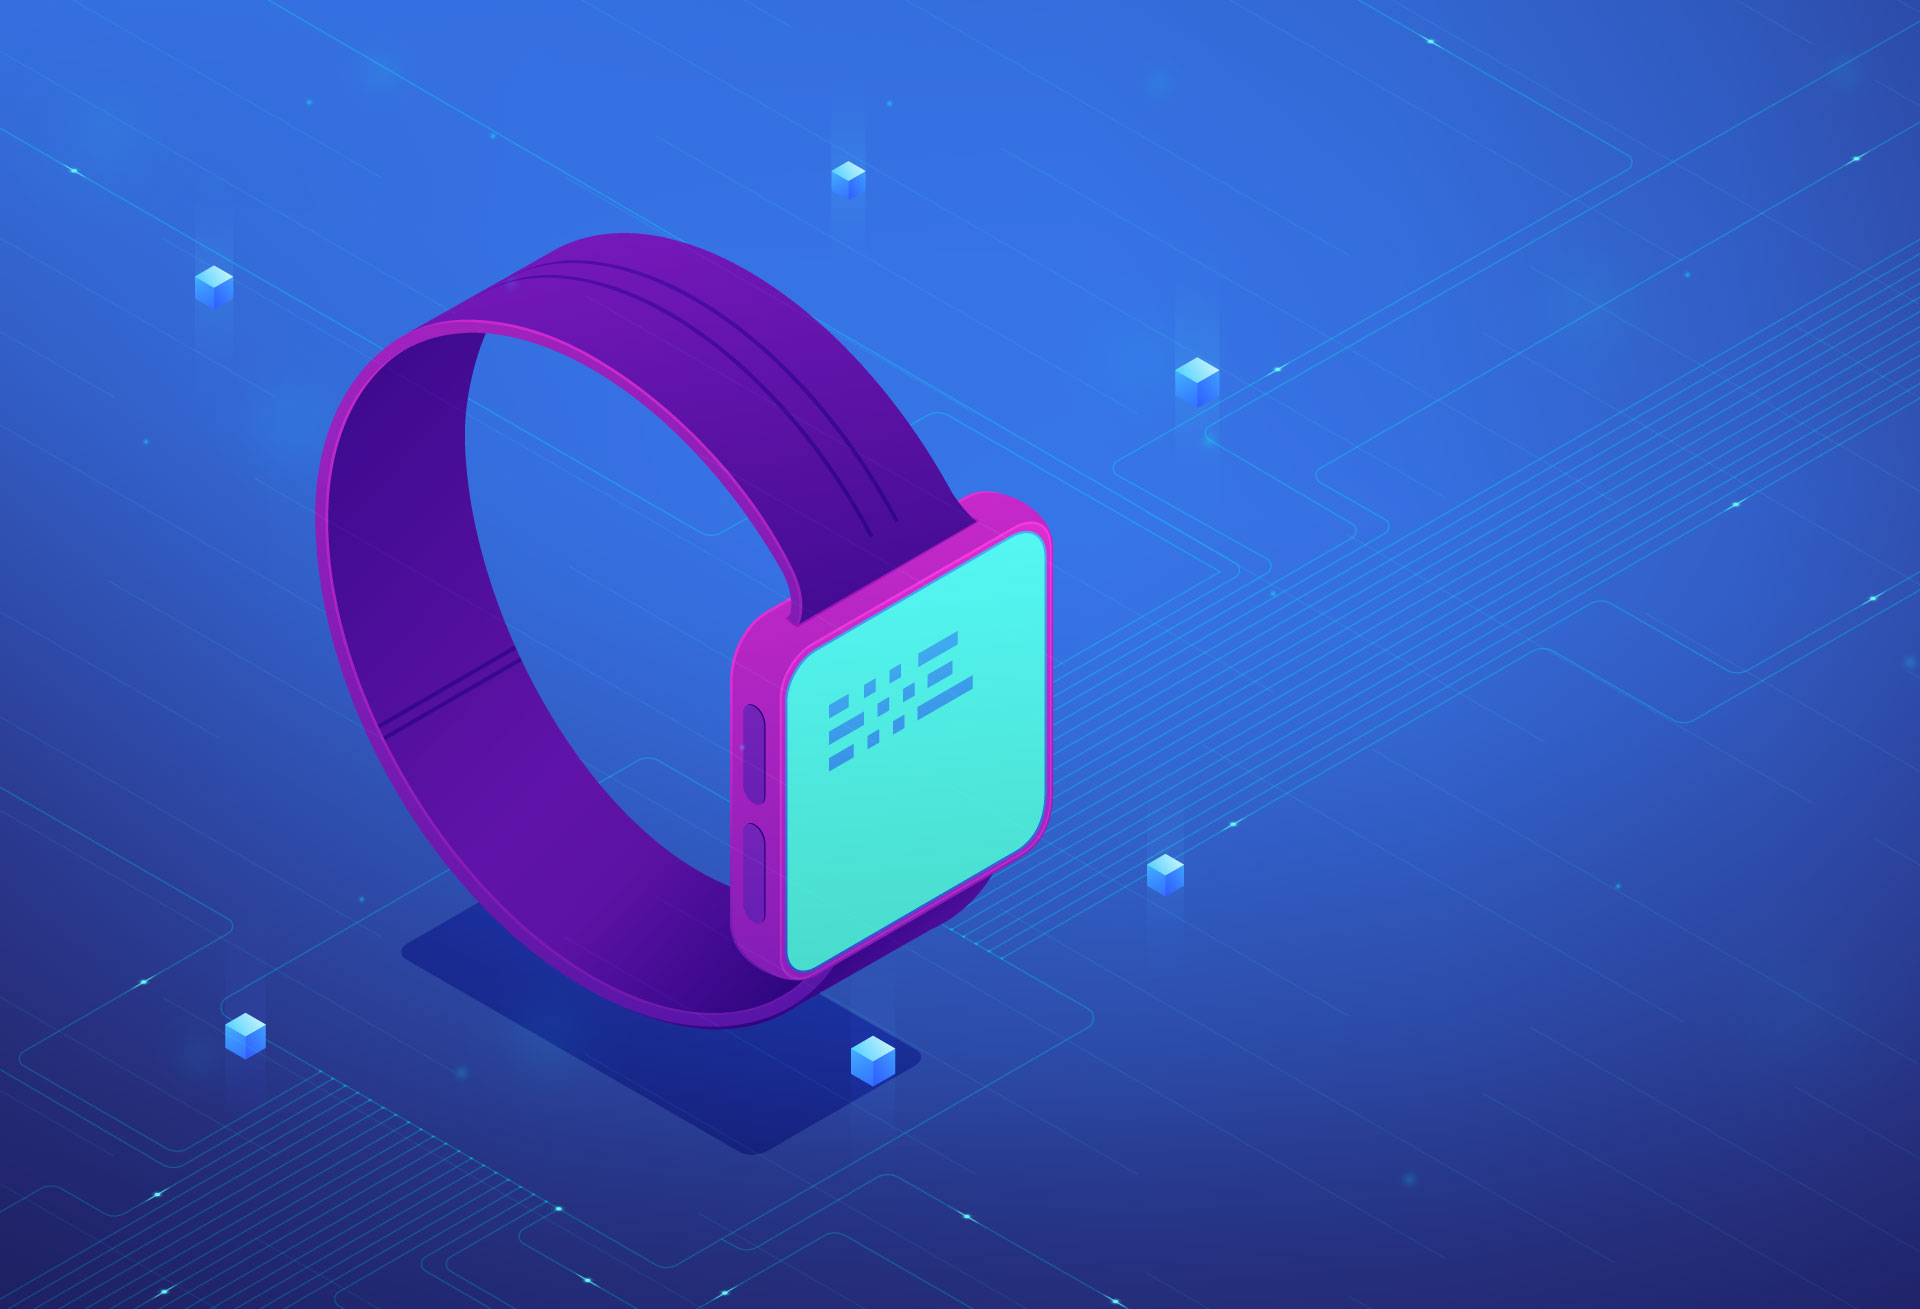 Smartwatch prices to drop in 2019, driving wearables growth to $42bn